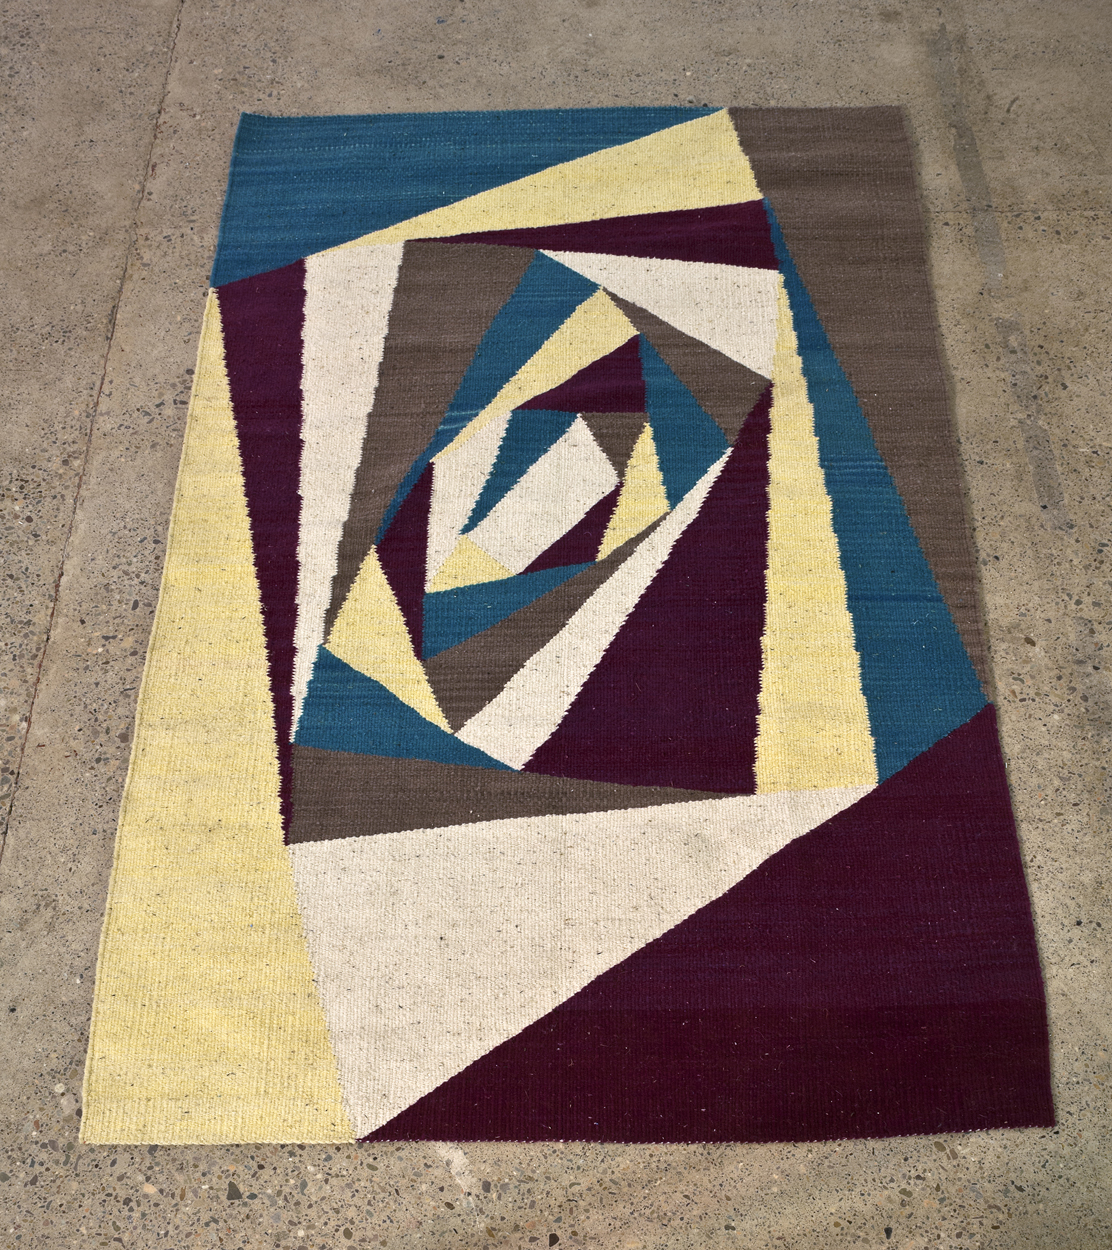 Twistings While Woven, 2013 woven wool carpet, 129 x 215 cm